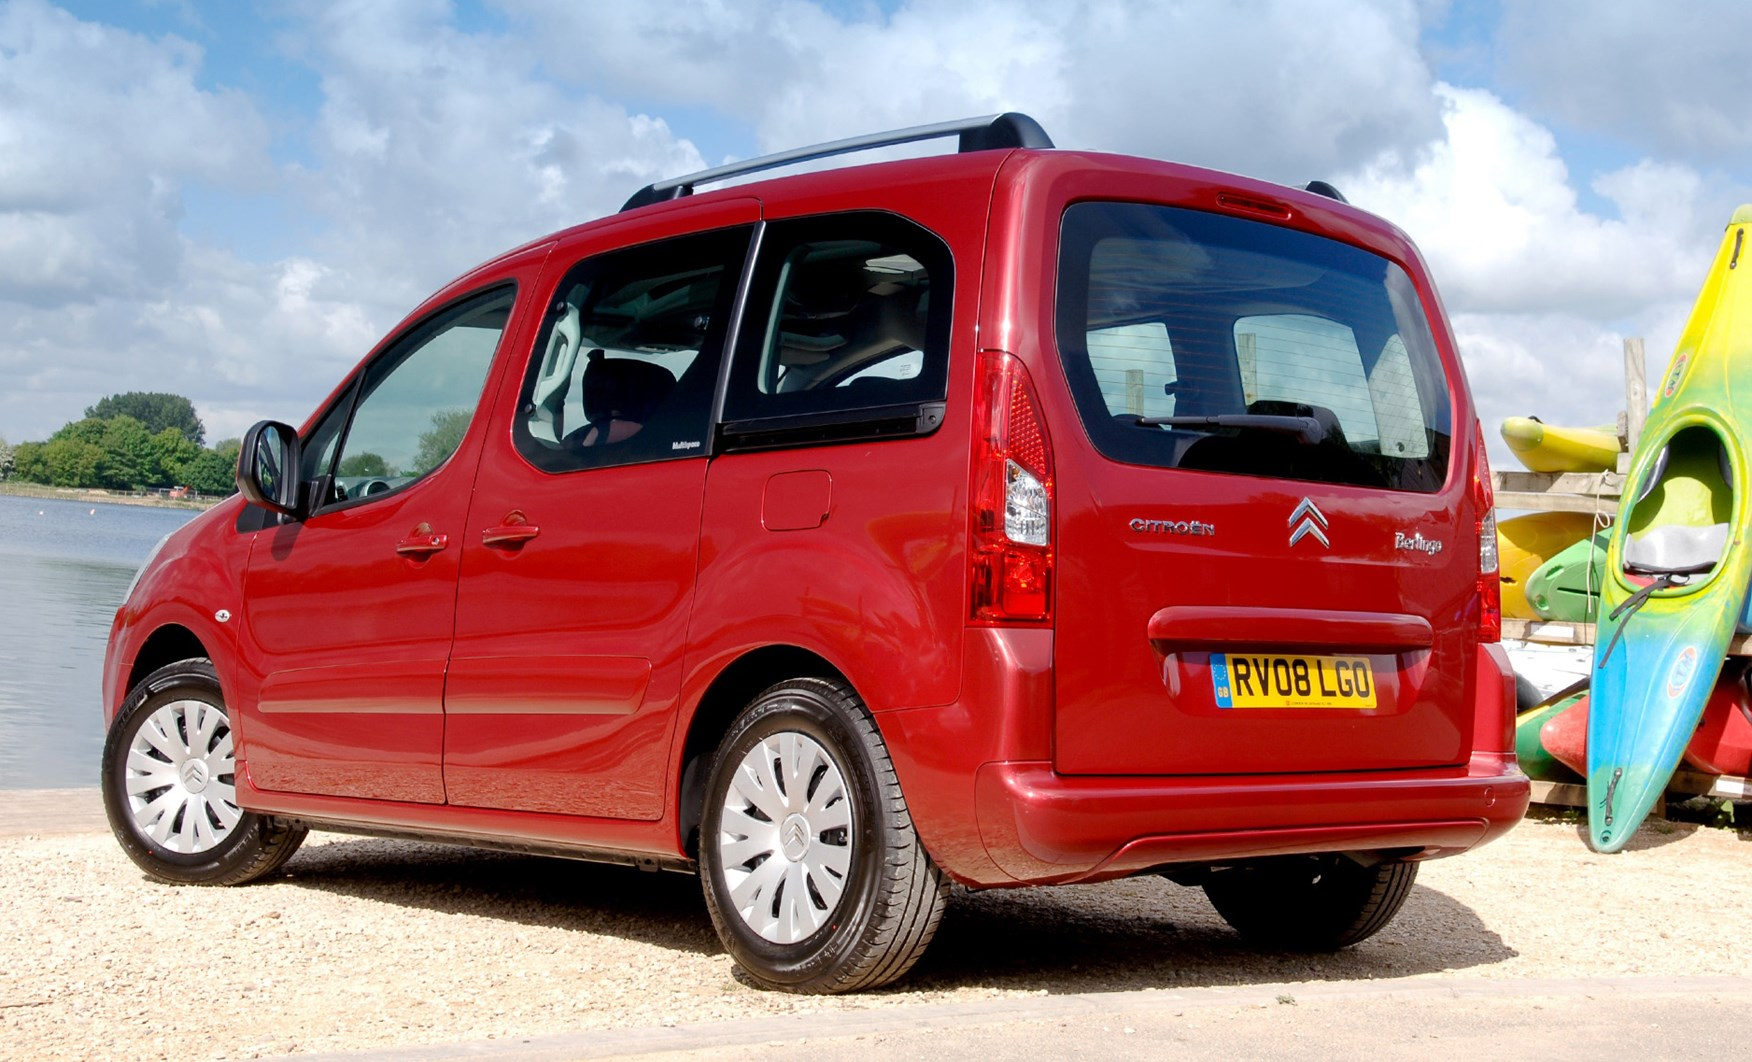 citroën berlingo multispace estate (2008 - ) features, equipment